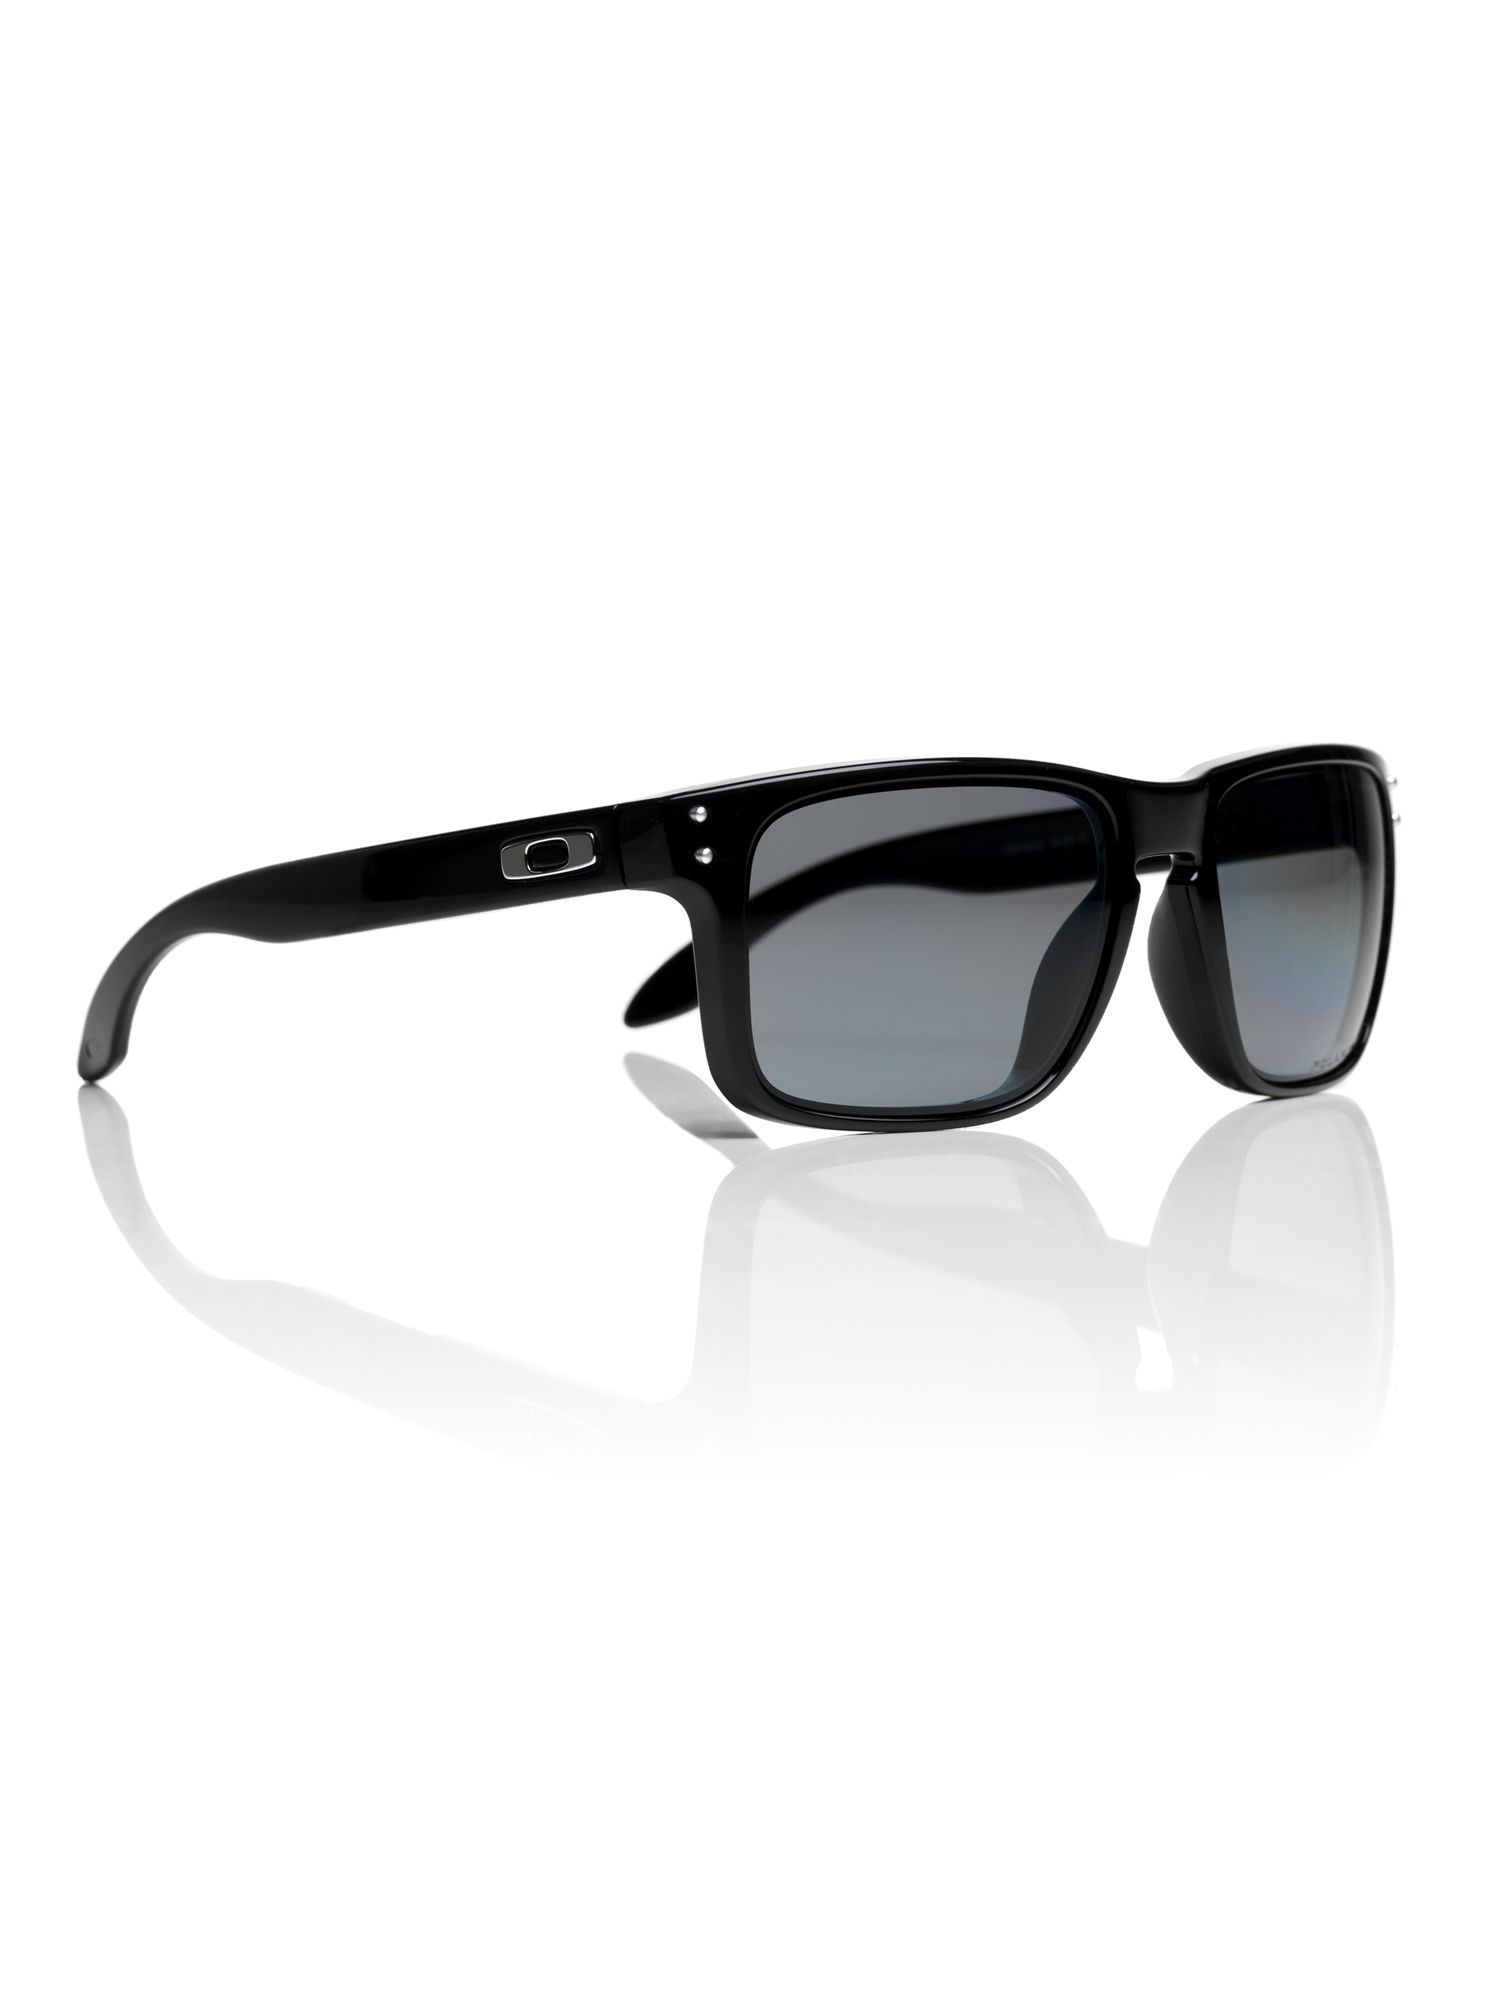 holbrook men Buy oakley men's blue holbrook r sunglasses, starting at $173 similar products also available sale now on.